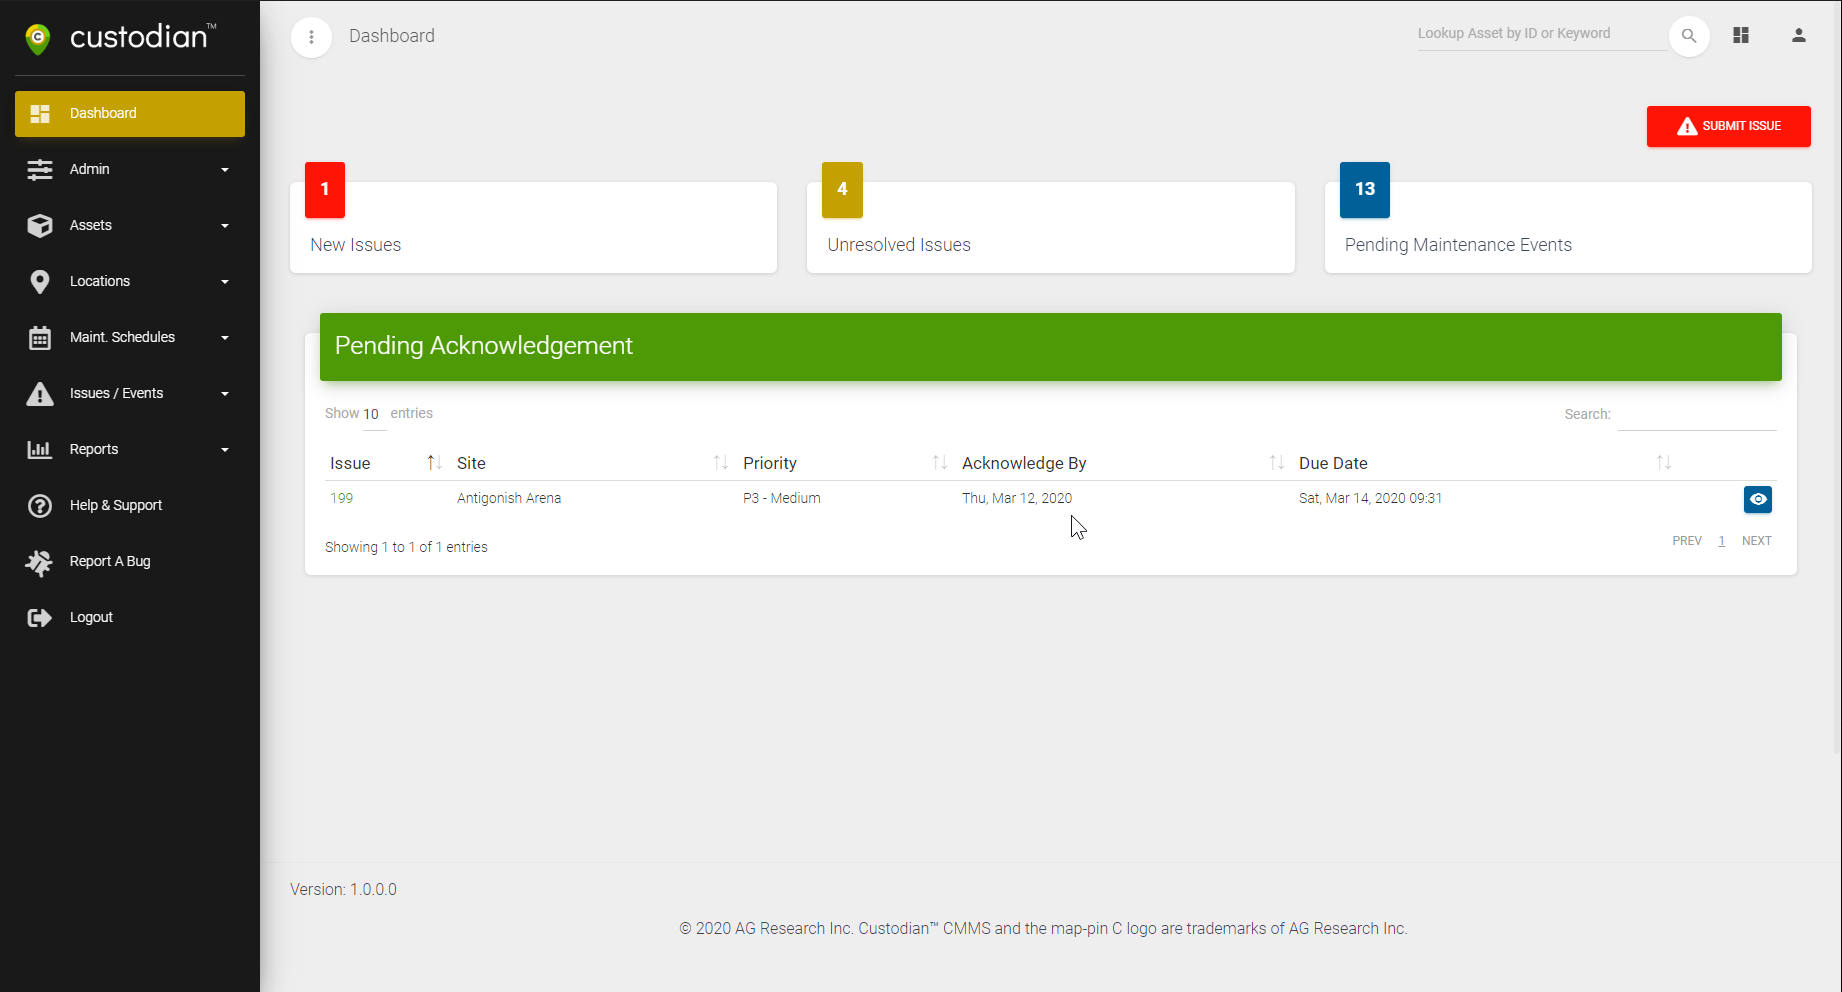 Screenshot of web application for Custodian C.M.M.S.